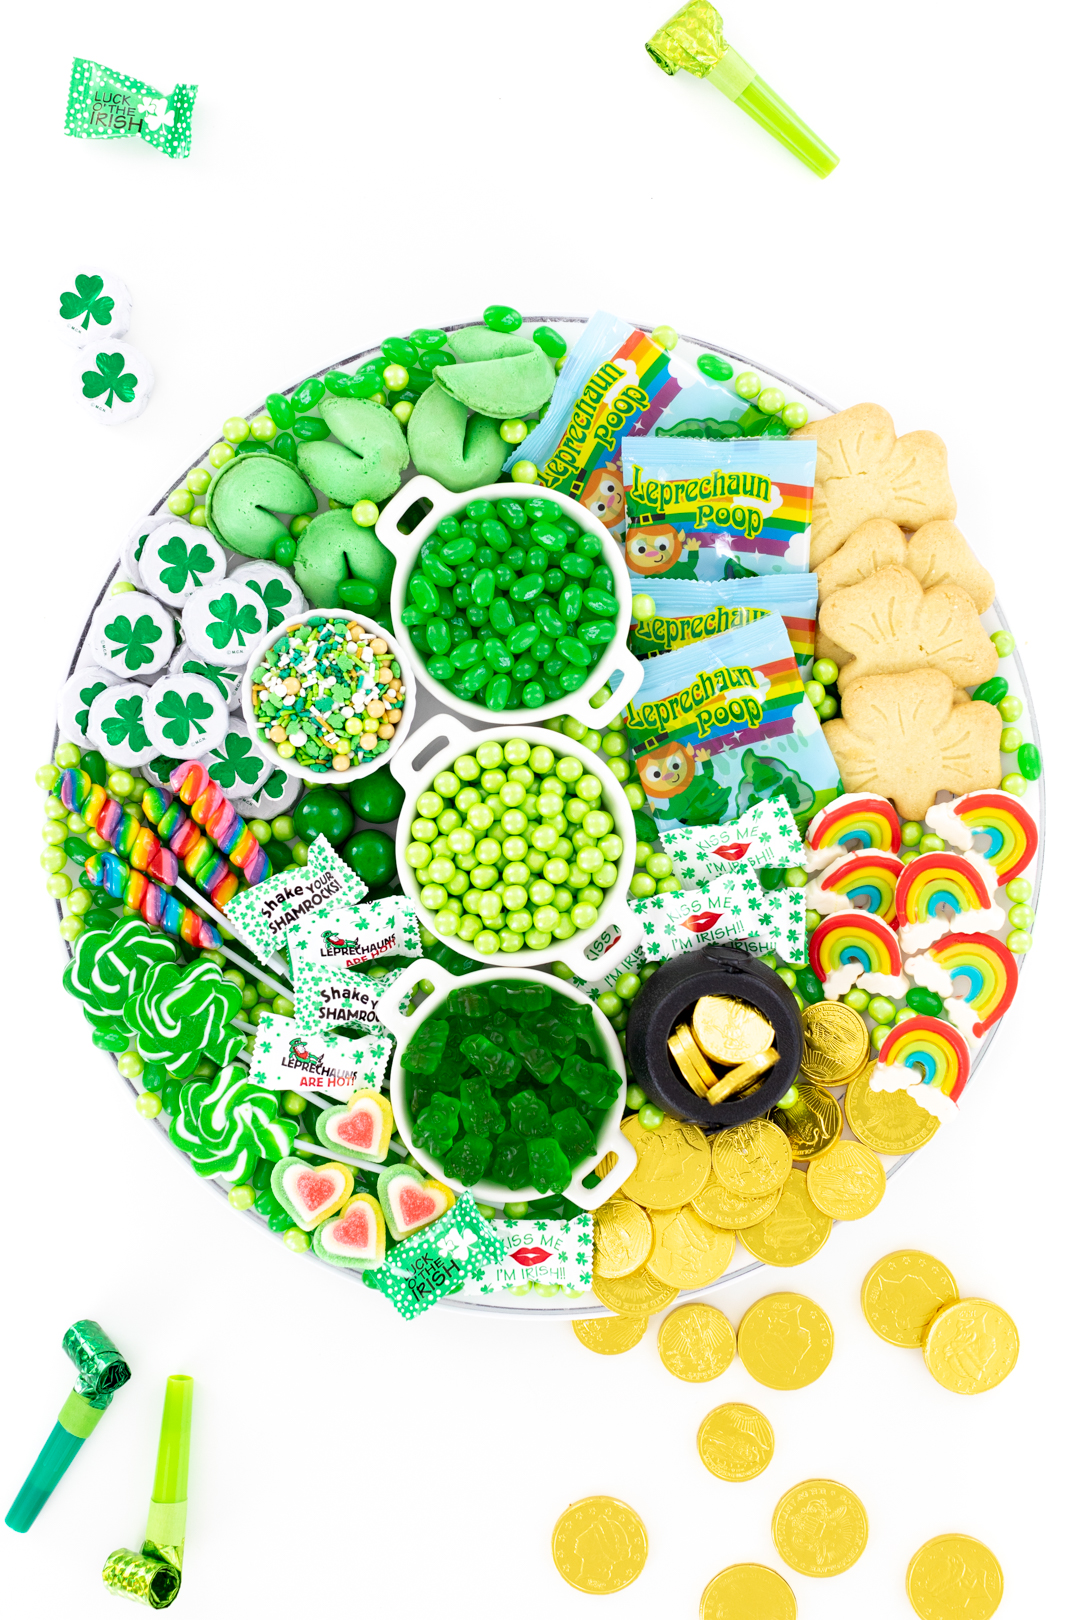 pretty tray chocolate coins, green candies and cute leprechaun candies